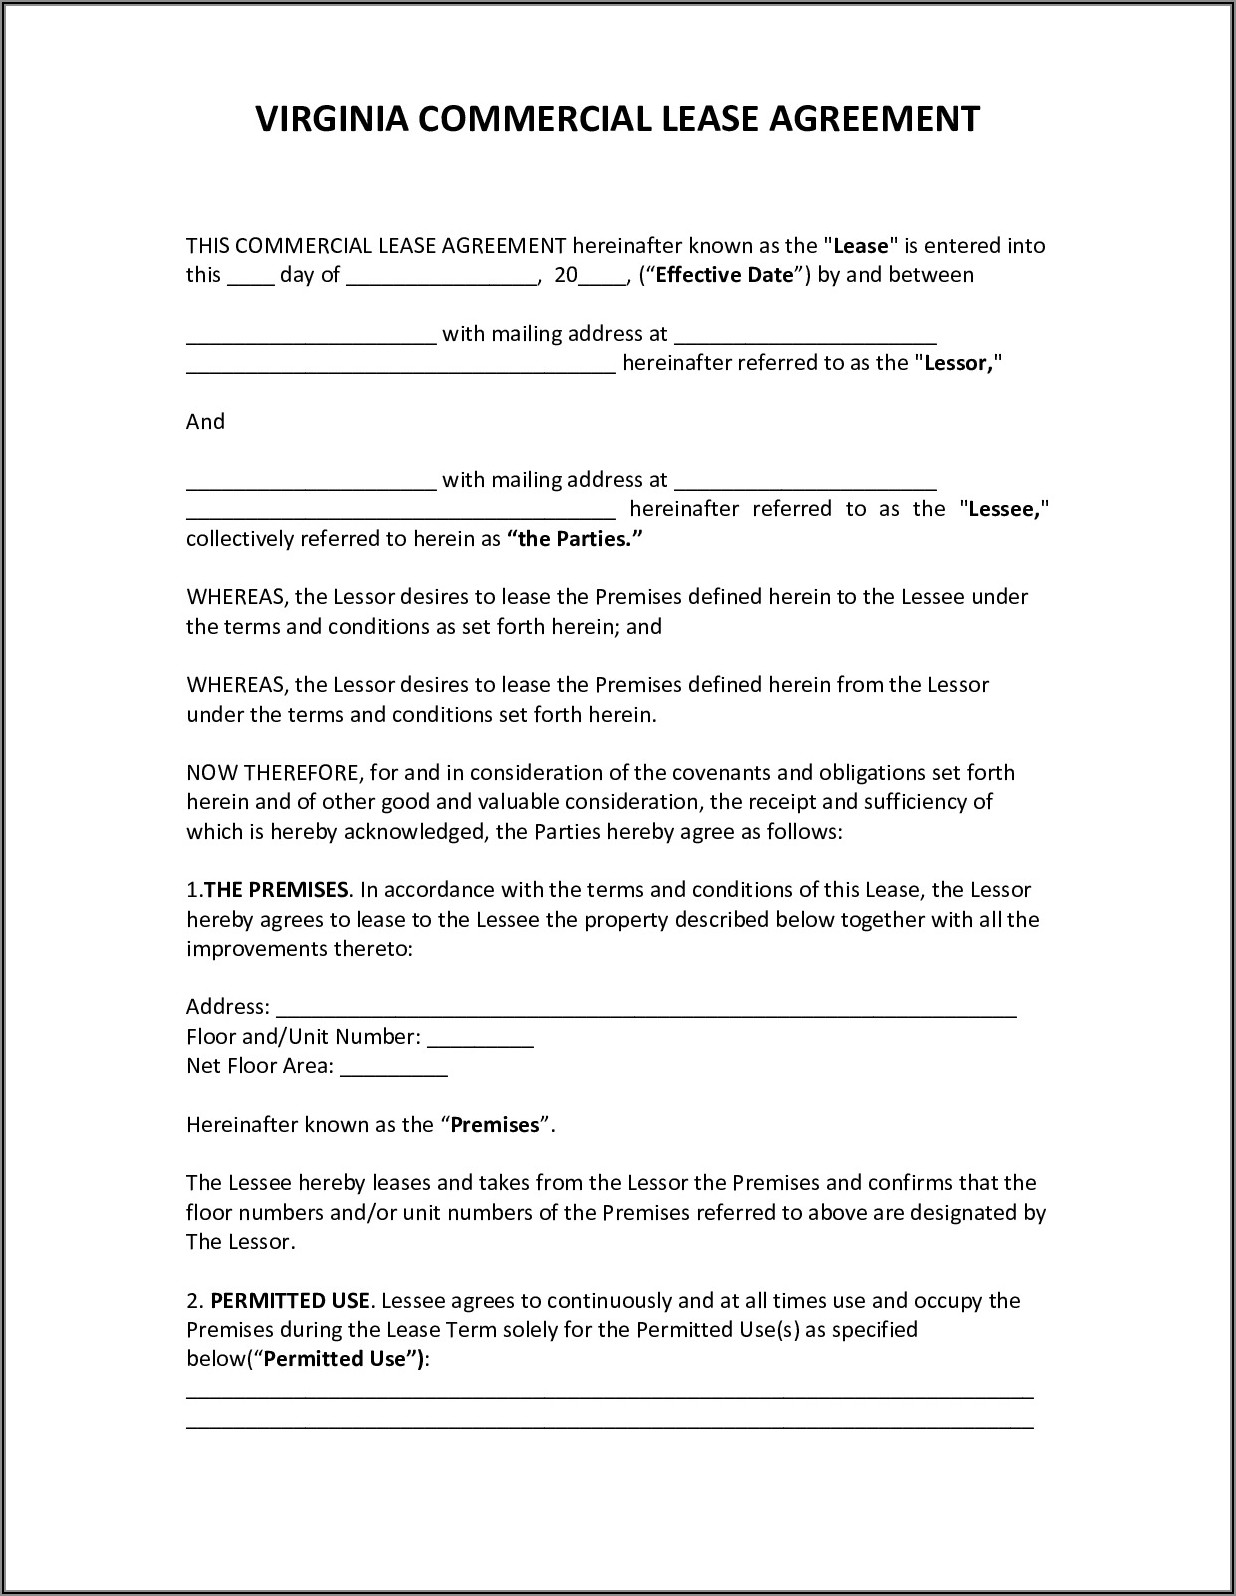 Virginia Commercial Lease Agreement Form